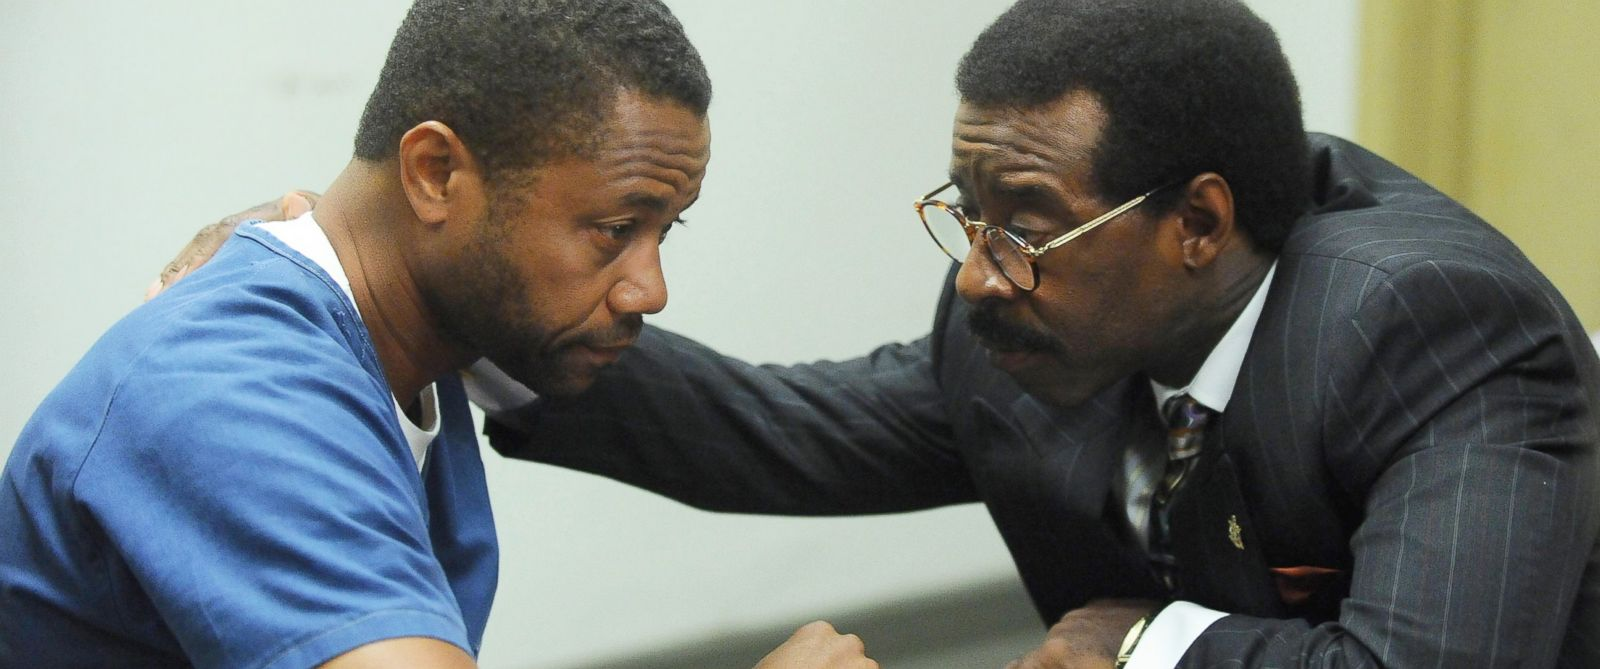 """PHOTO:Cuba Gooding, Jr. as O.J. Simpson and Courtney B. Vance as Johnnie Cochran in a scene from the TV miniseries, """"The People v. O.J. Simpson: American Crime Story."""""""